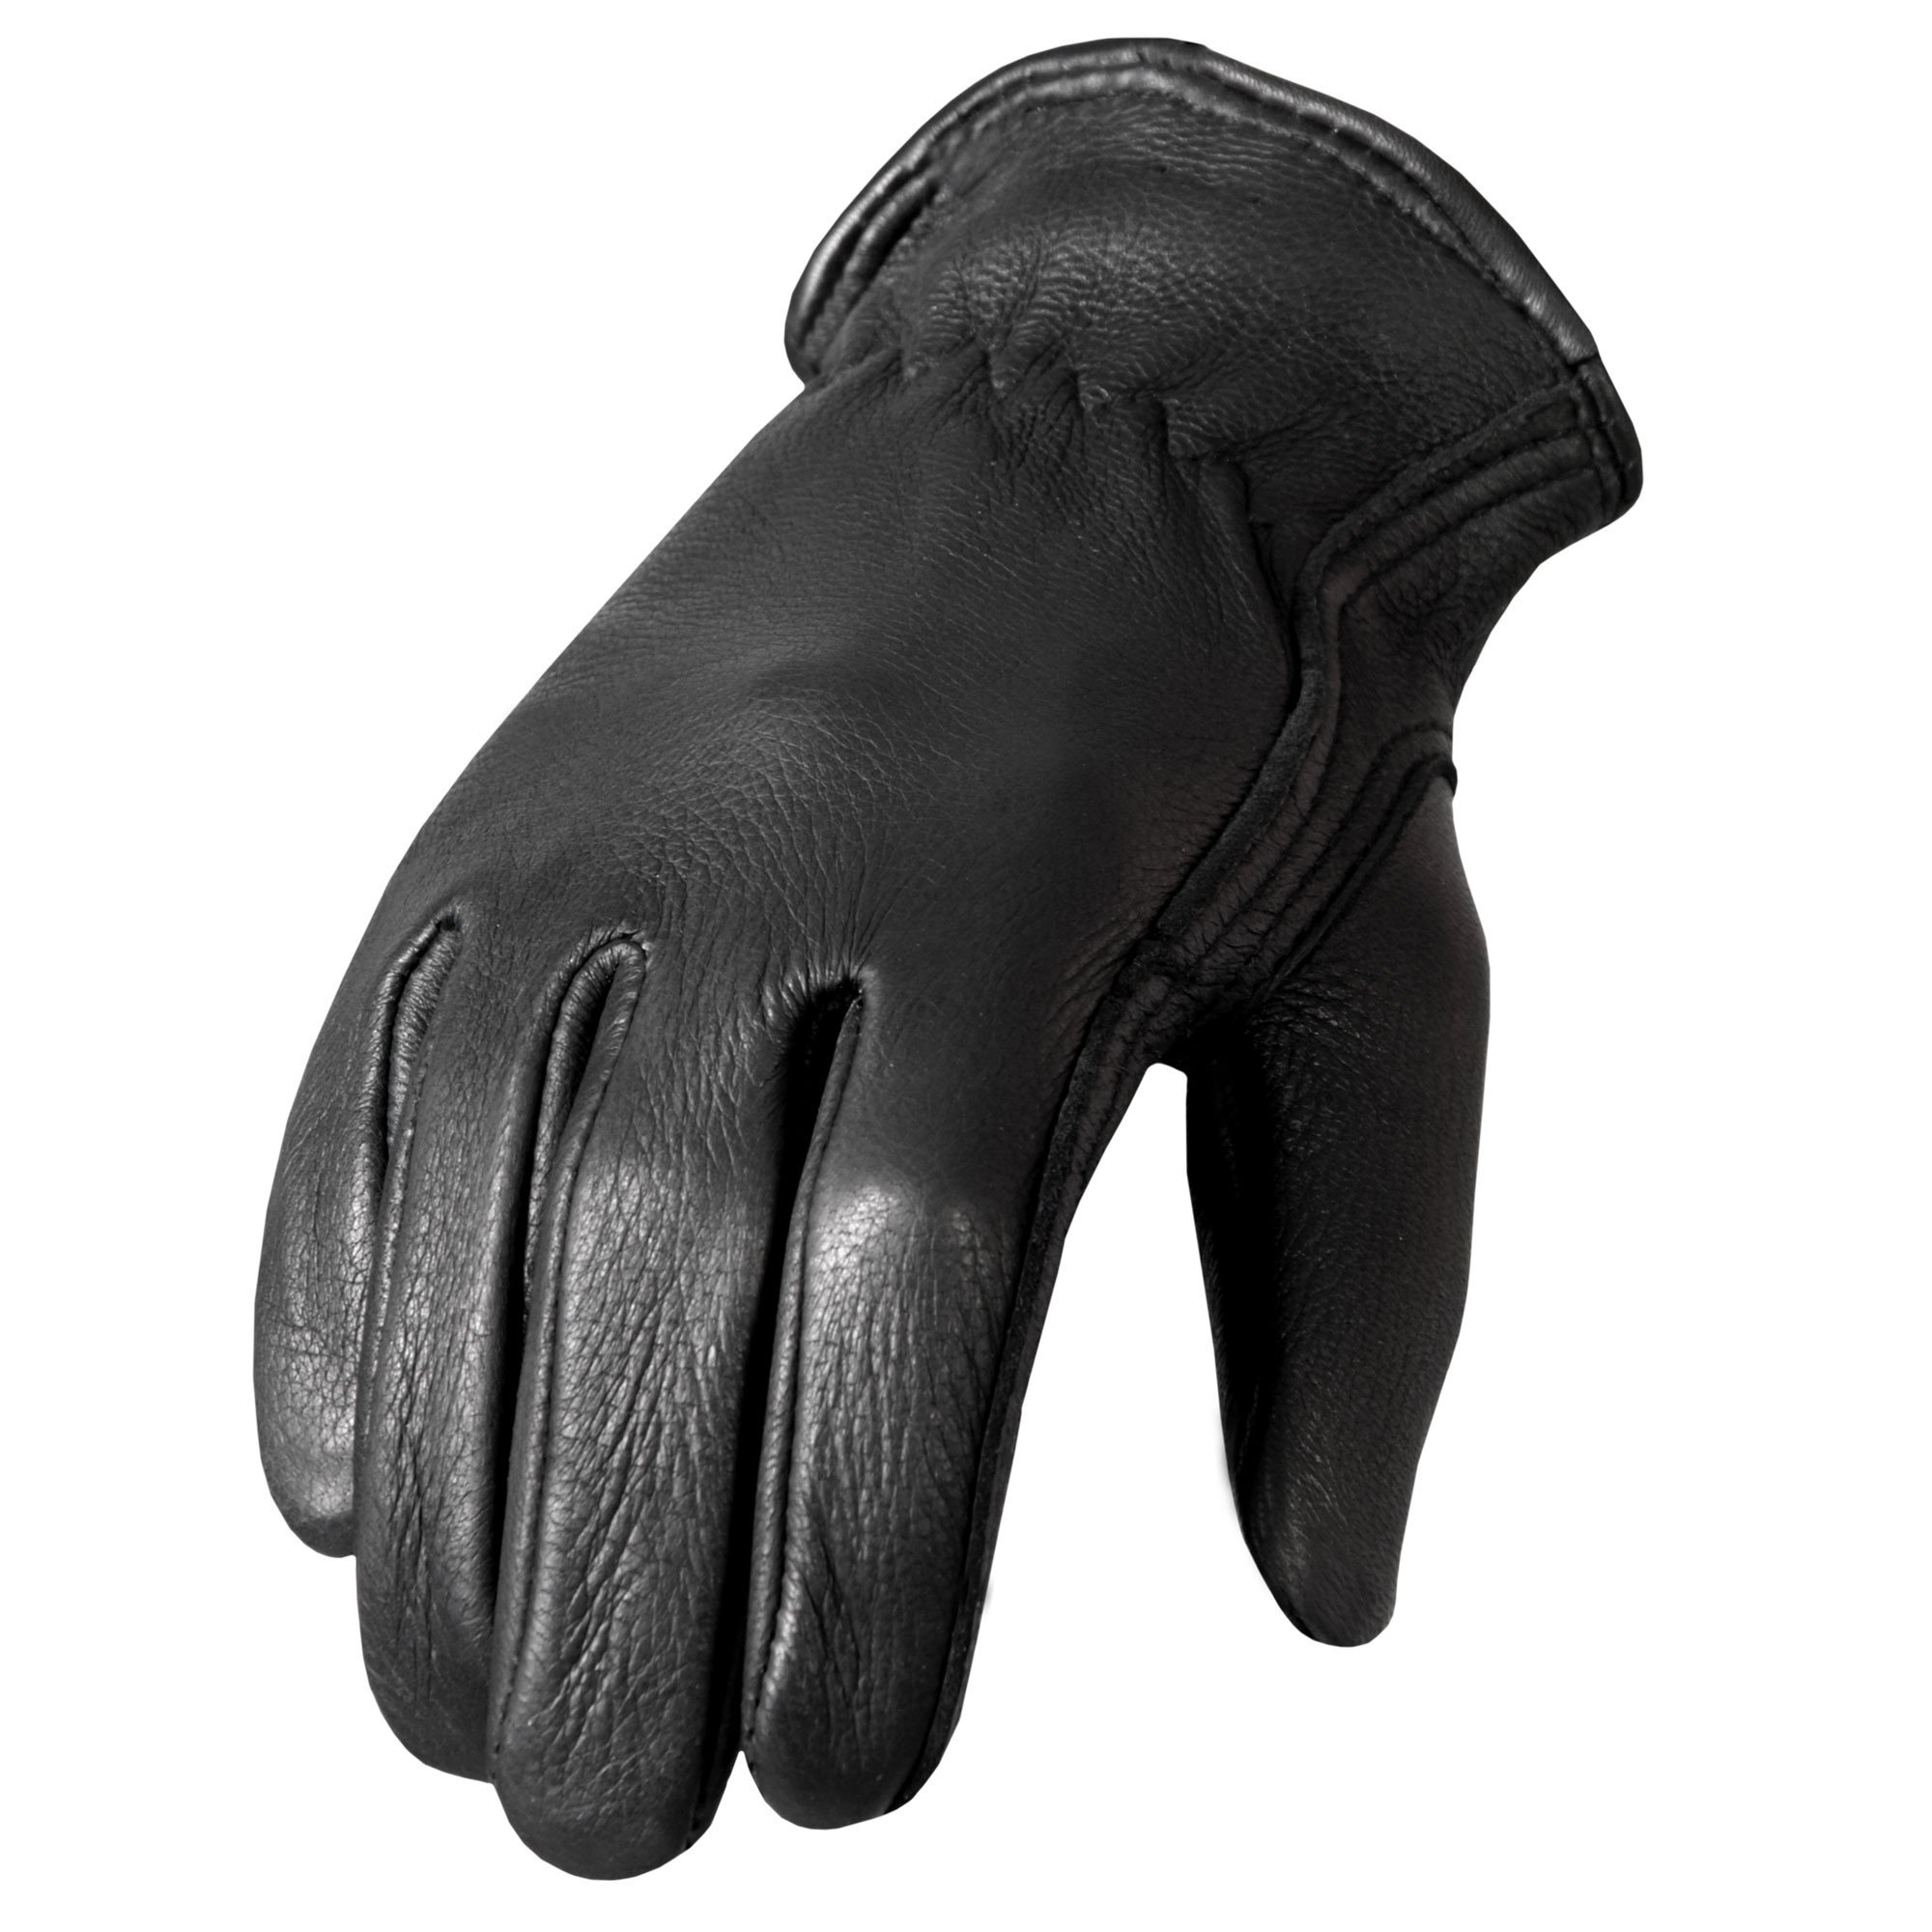 Hot Leathers Classic Deerskin Unlined Driving Gloves (Black, Medium)